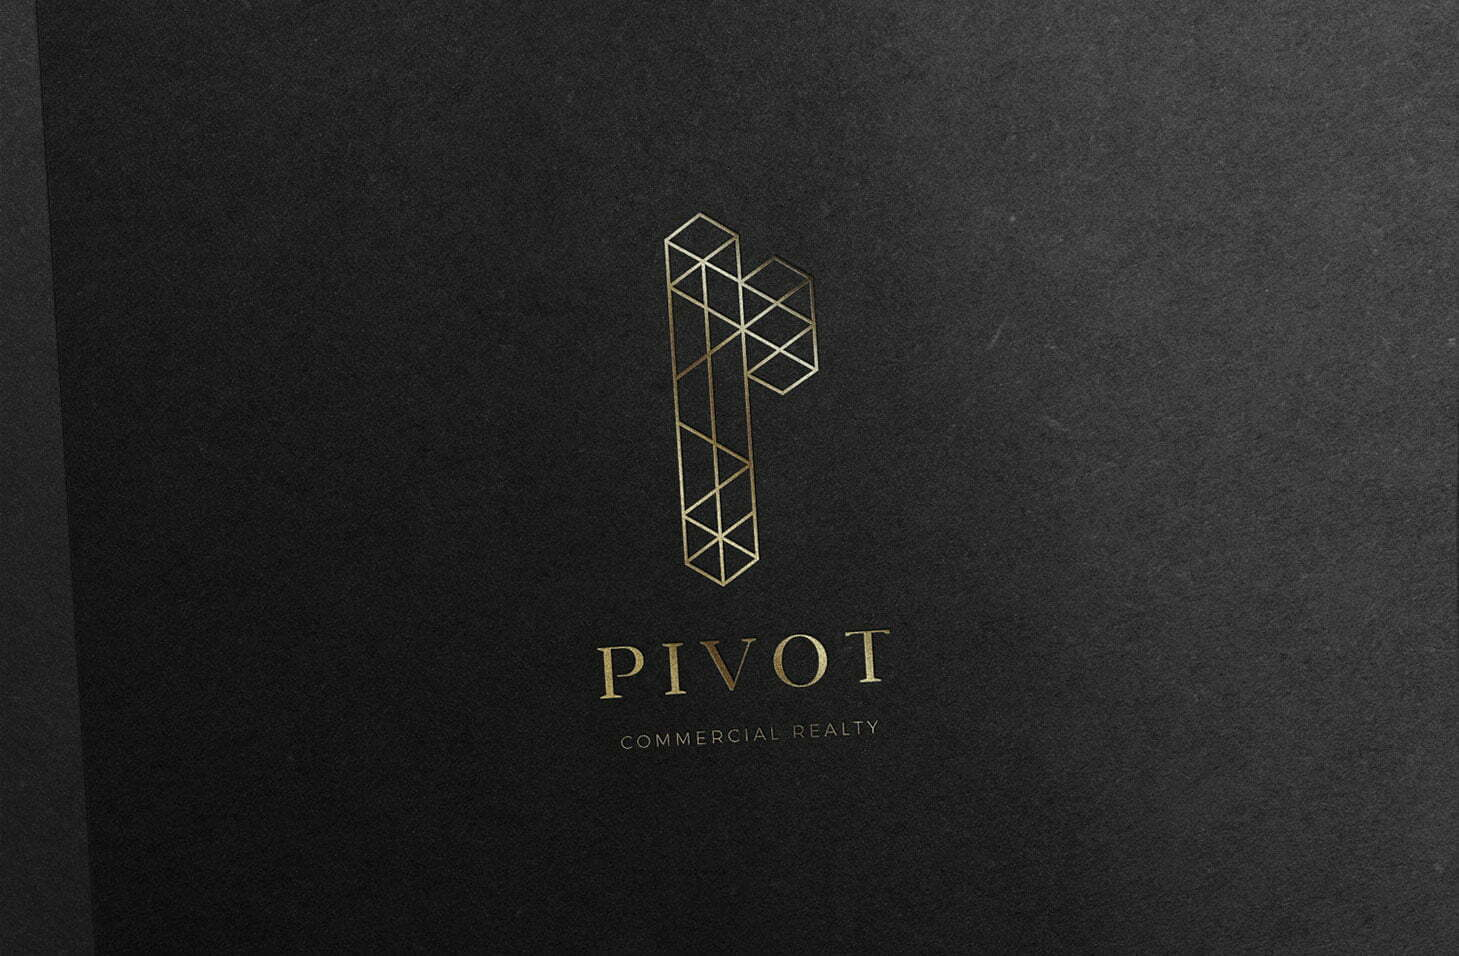 PIVOT Commercial Realty